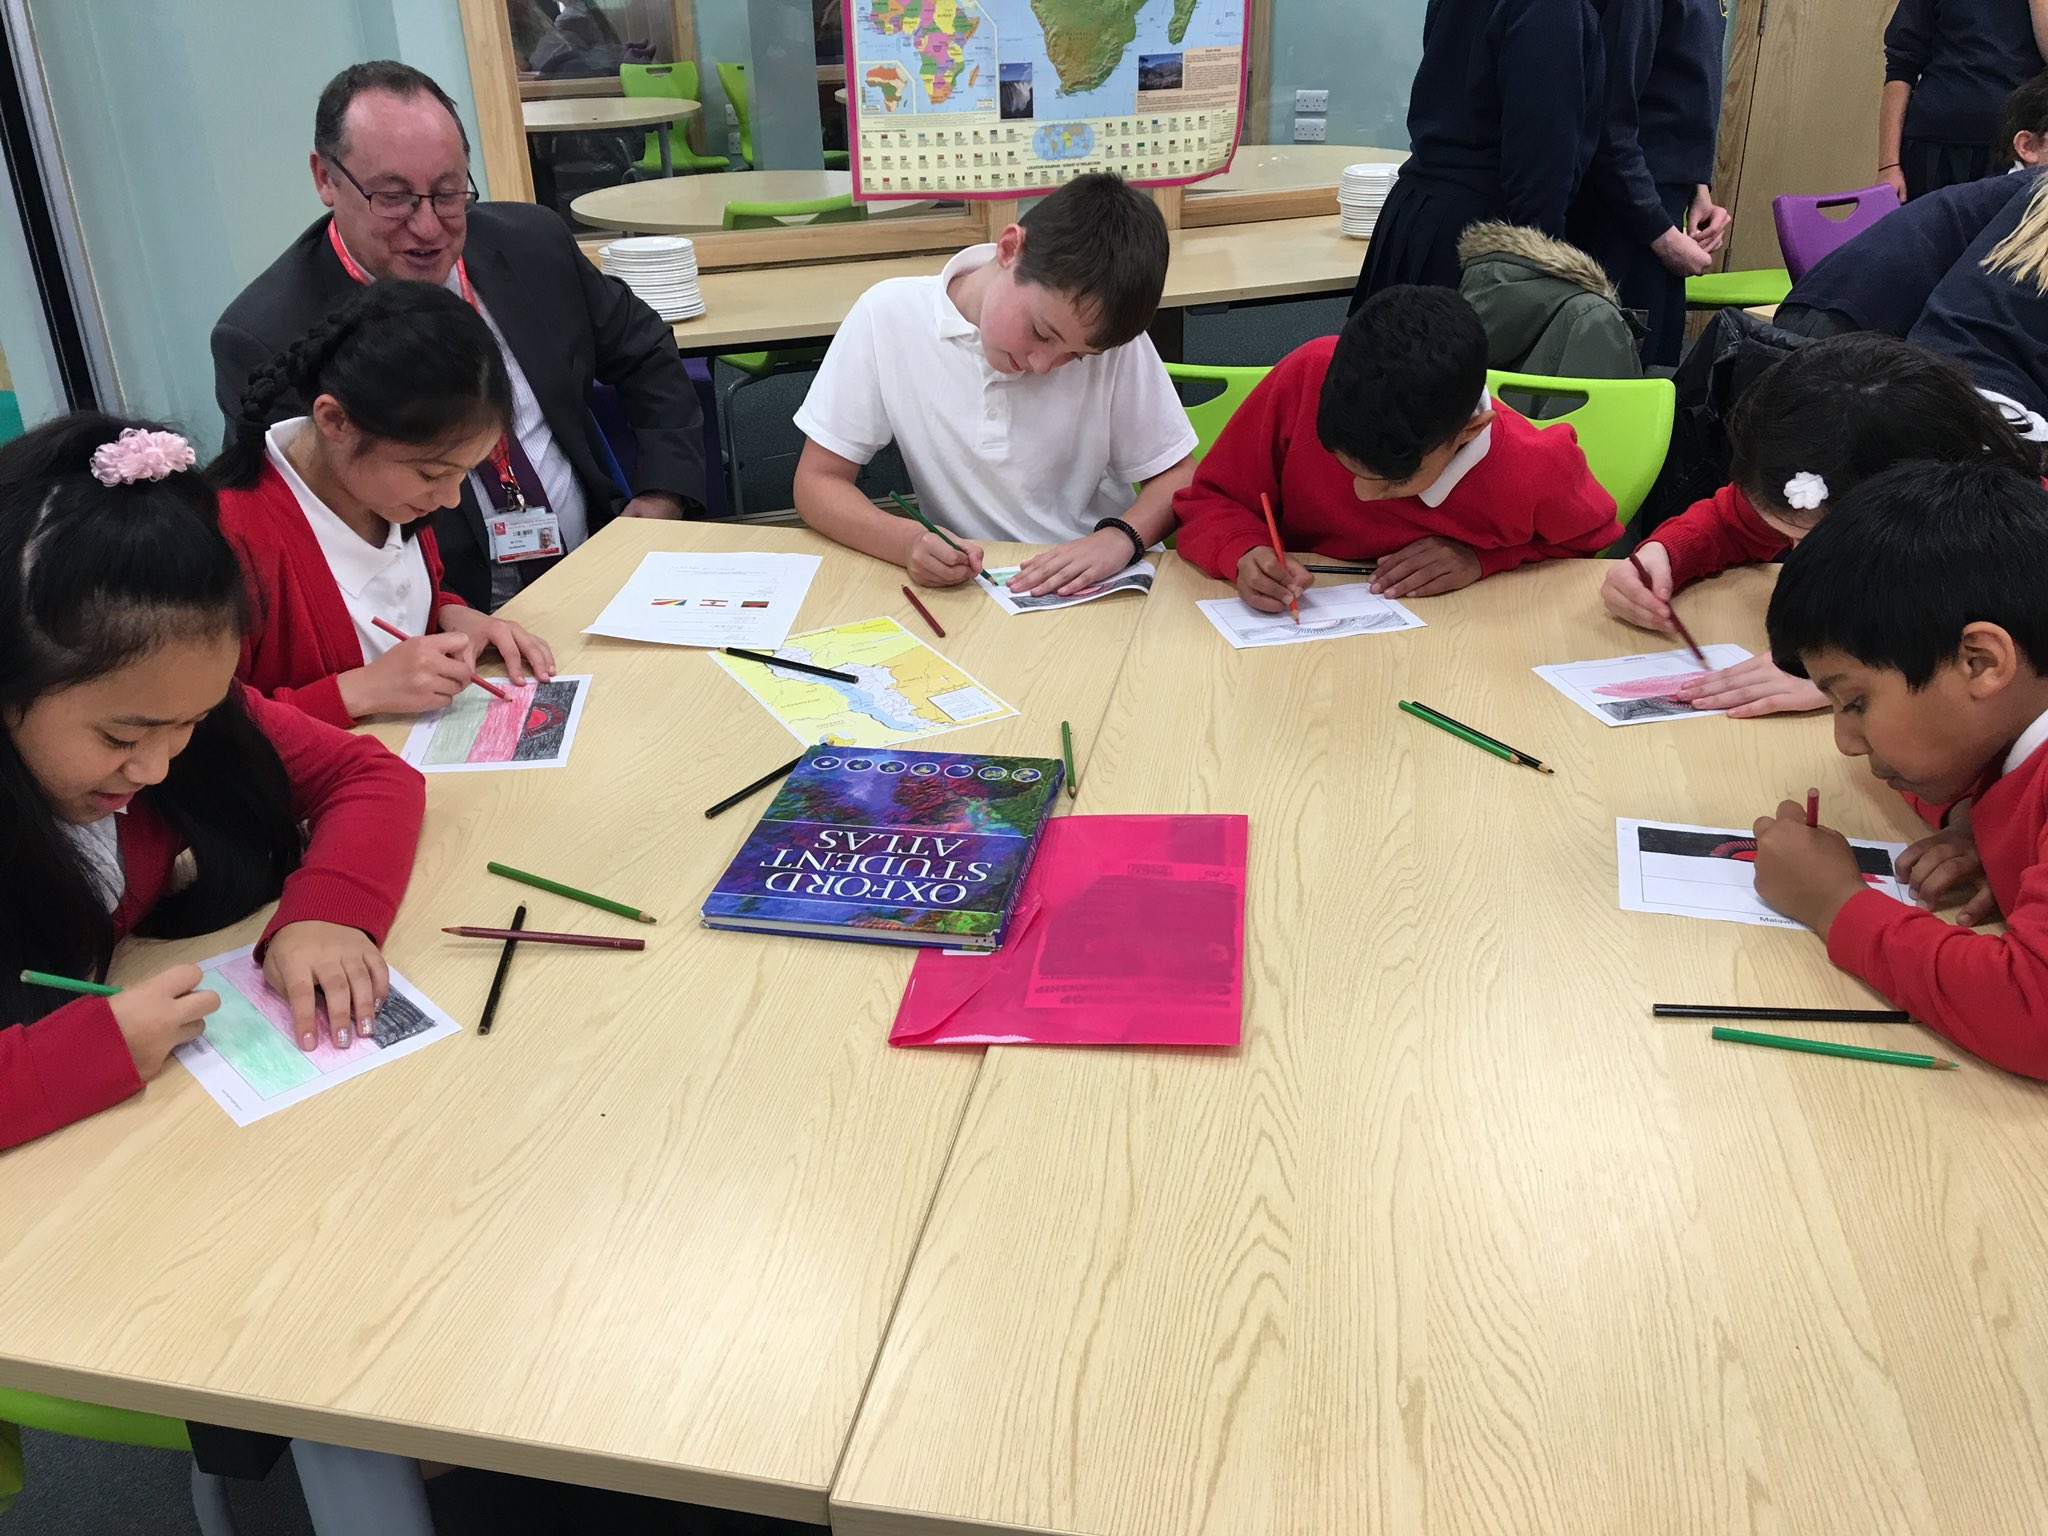 Photo: Mr Pye and students at the the Global Learning event